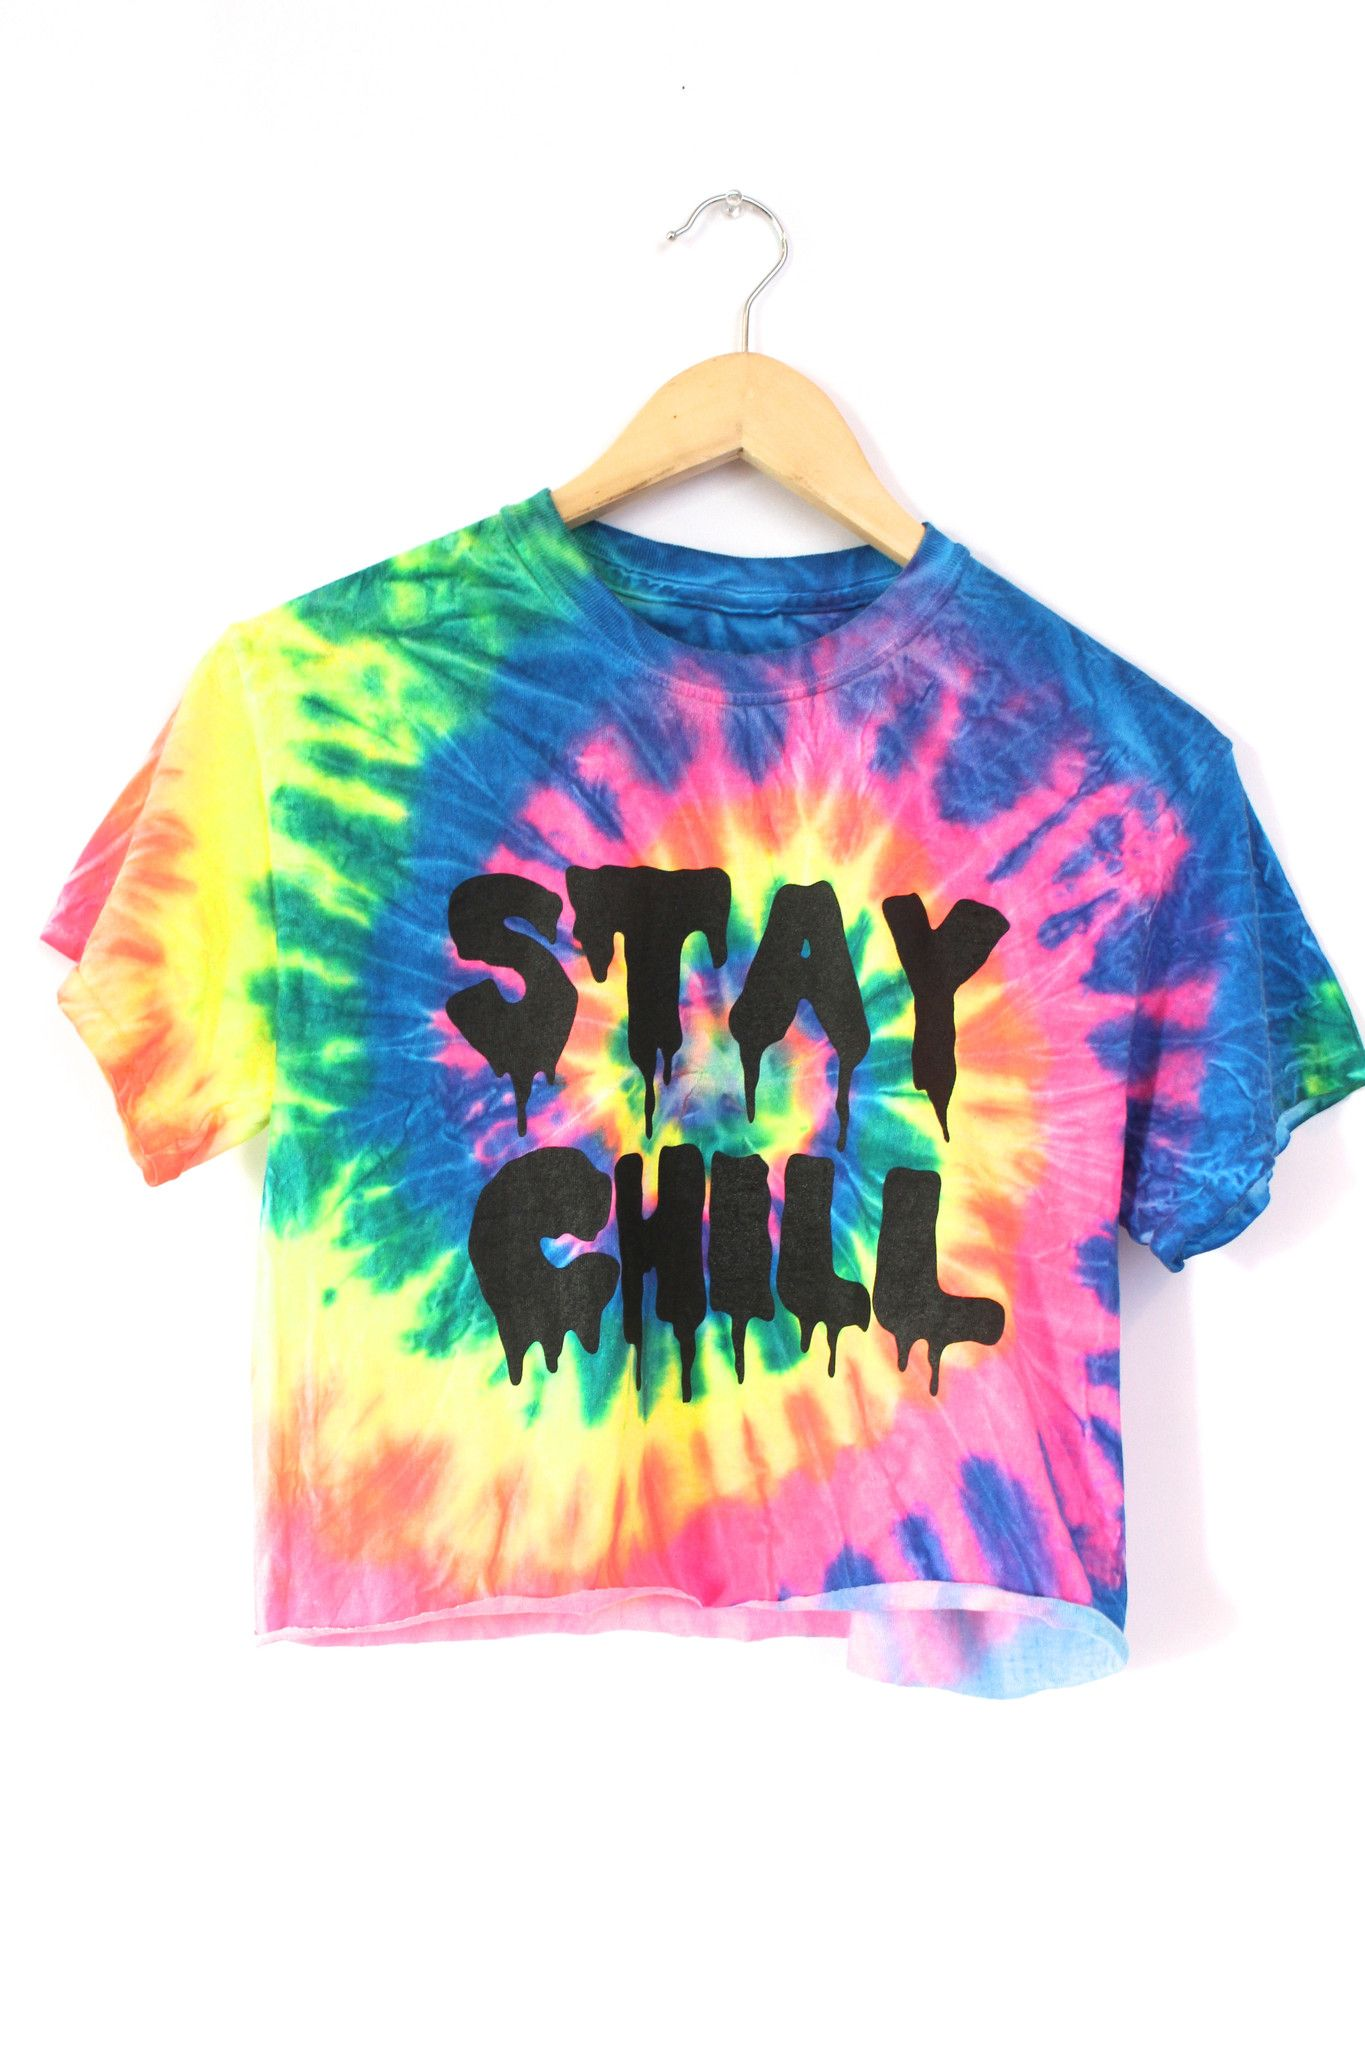 STAY CHILL Neon Rainbow Tie-Dye Graphic Crop Top in 2019  54186d3ef1c